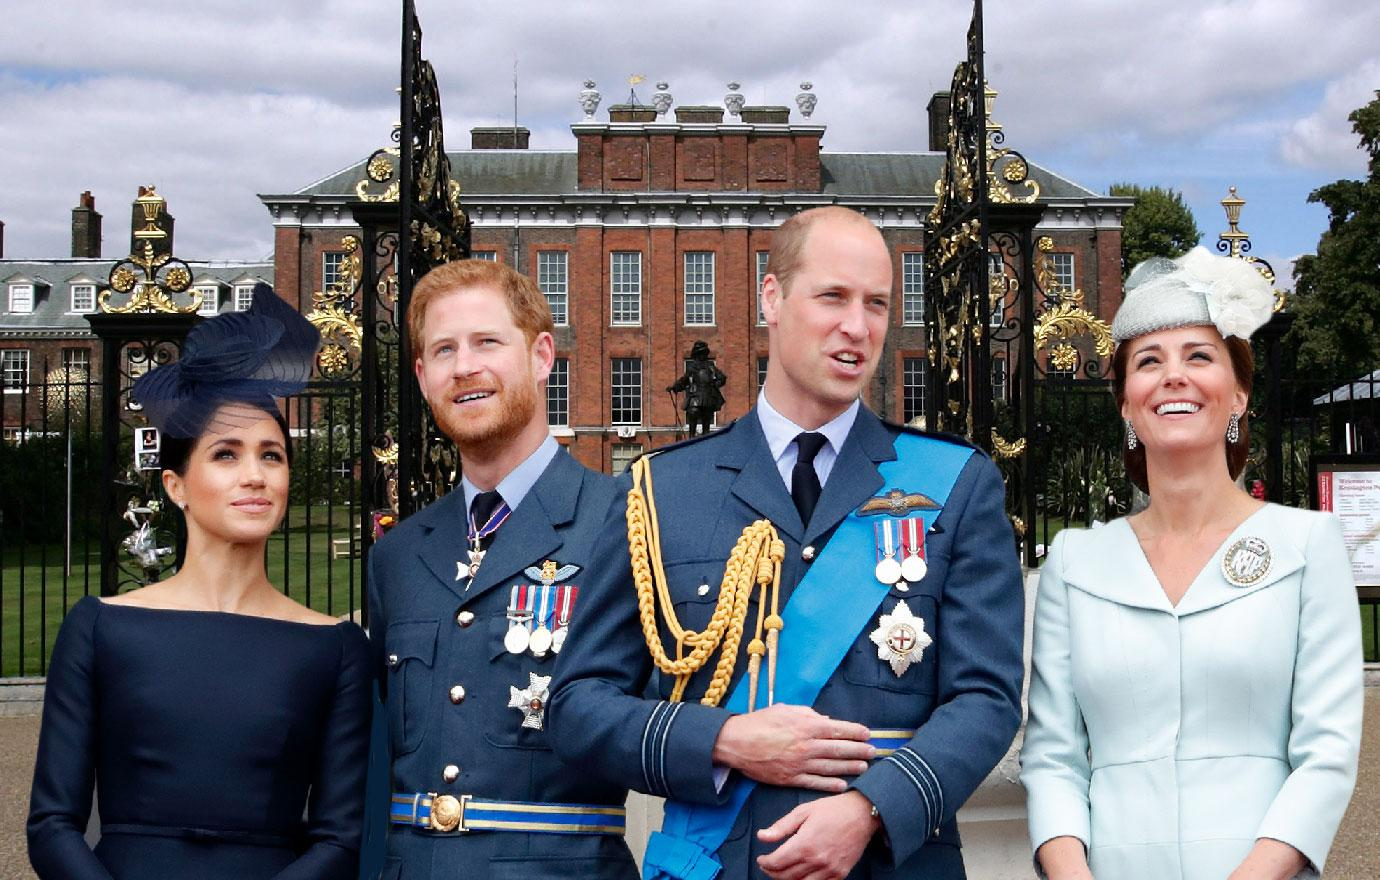 //prince william and prince harry plan to split kensington palace pp